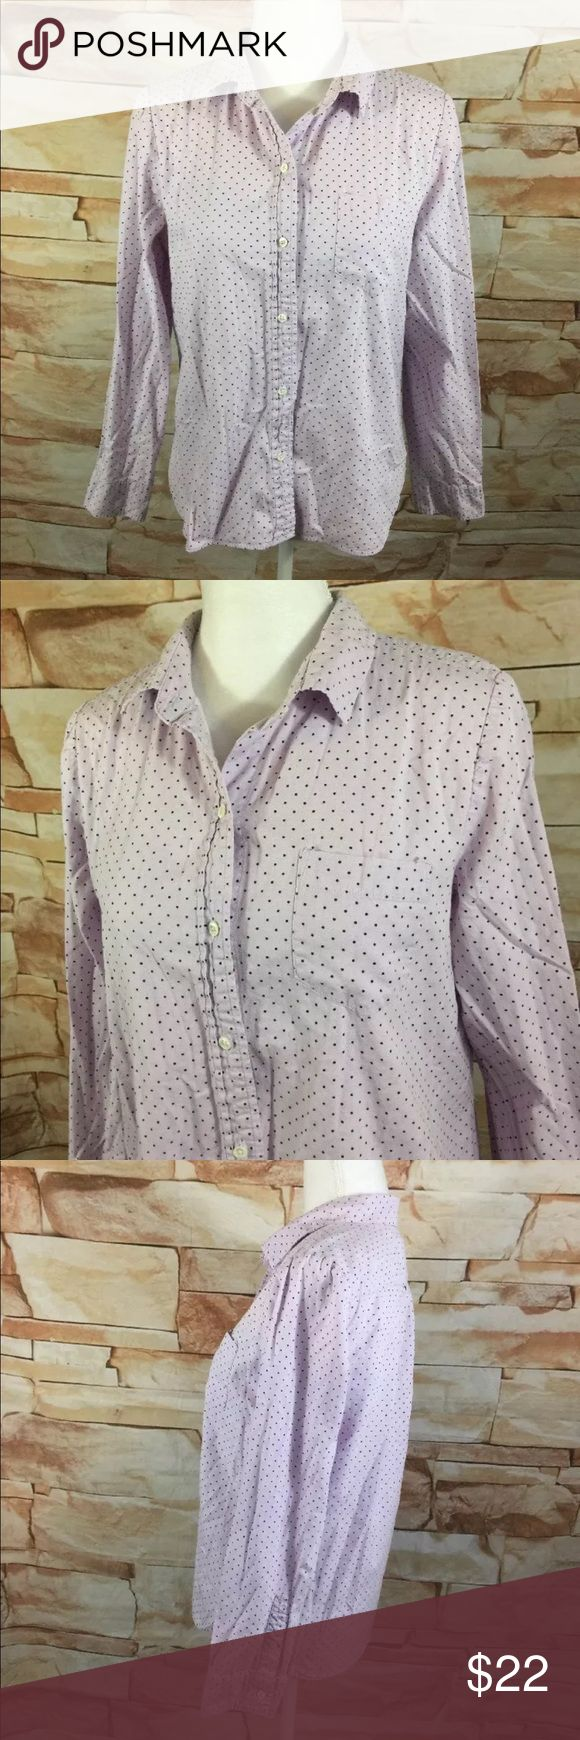 "J.Crew Shrunken Shirt in Dot Oxford J.Crew  Shrunken Shirt in Dot Oxford  Womens 10  Purple Polka Dot  Button Down Top  100% Cotton   Measurements Approximate: Shoulder to Shoulder - 15"" Armpit to Armpit - 20"" Sleeve Length -23"" Shirt Length - 25"" J. Crew Tops Button Down Shirts"